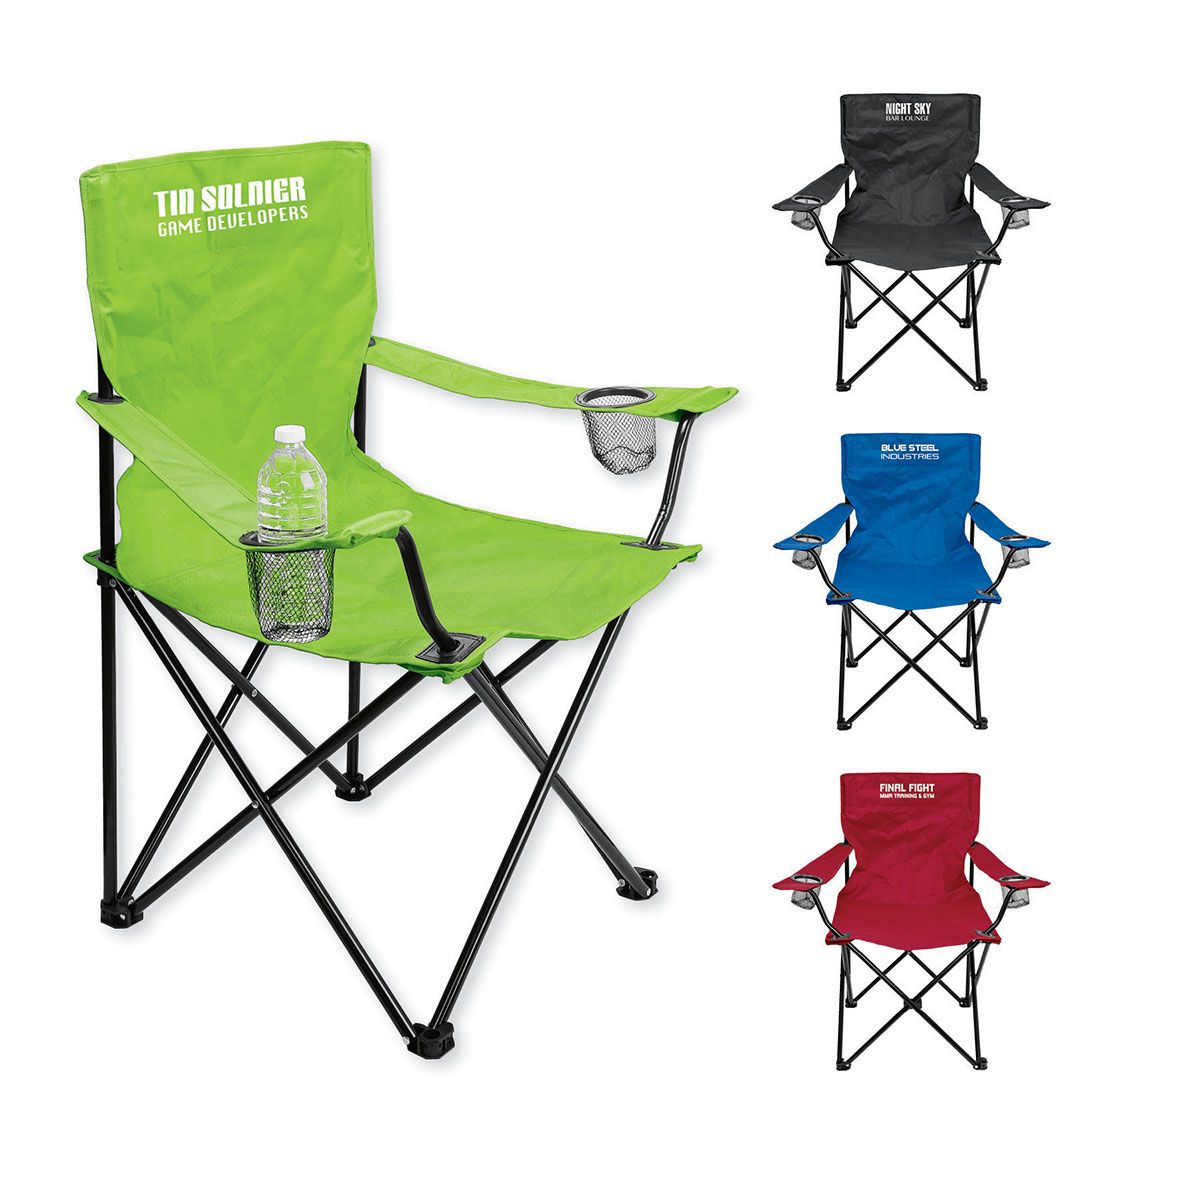 Folding Event Chair with Carrying Bag promotionalproducts